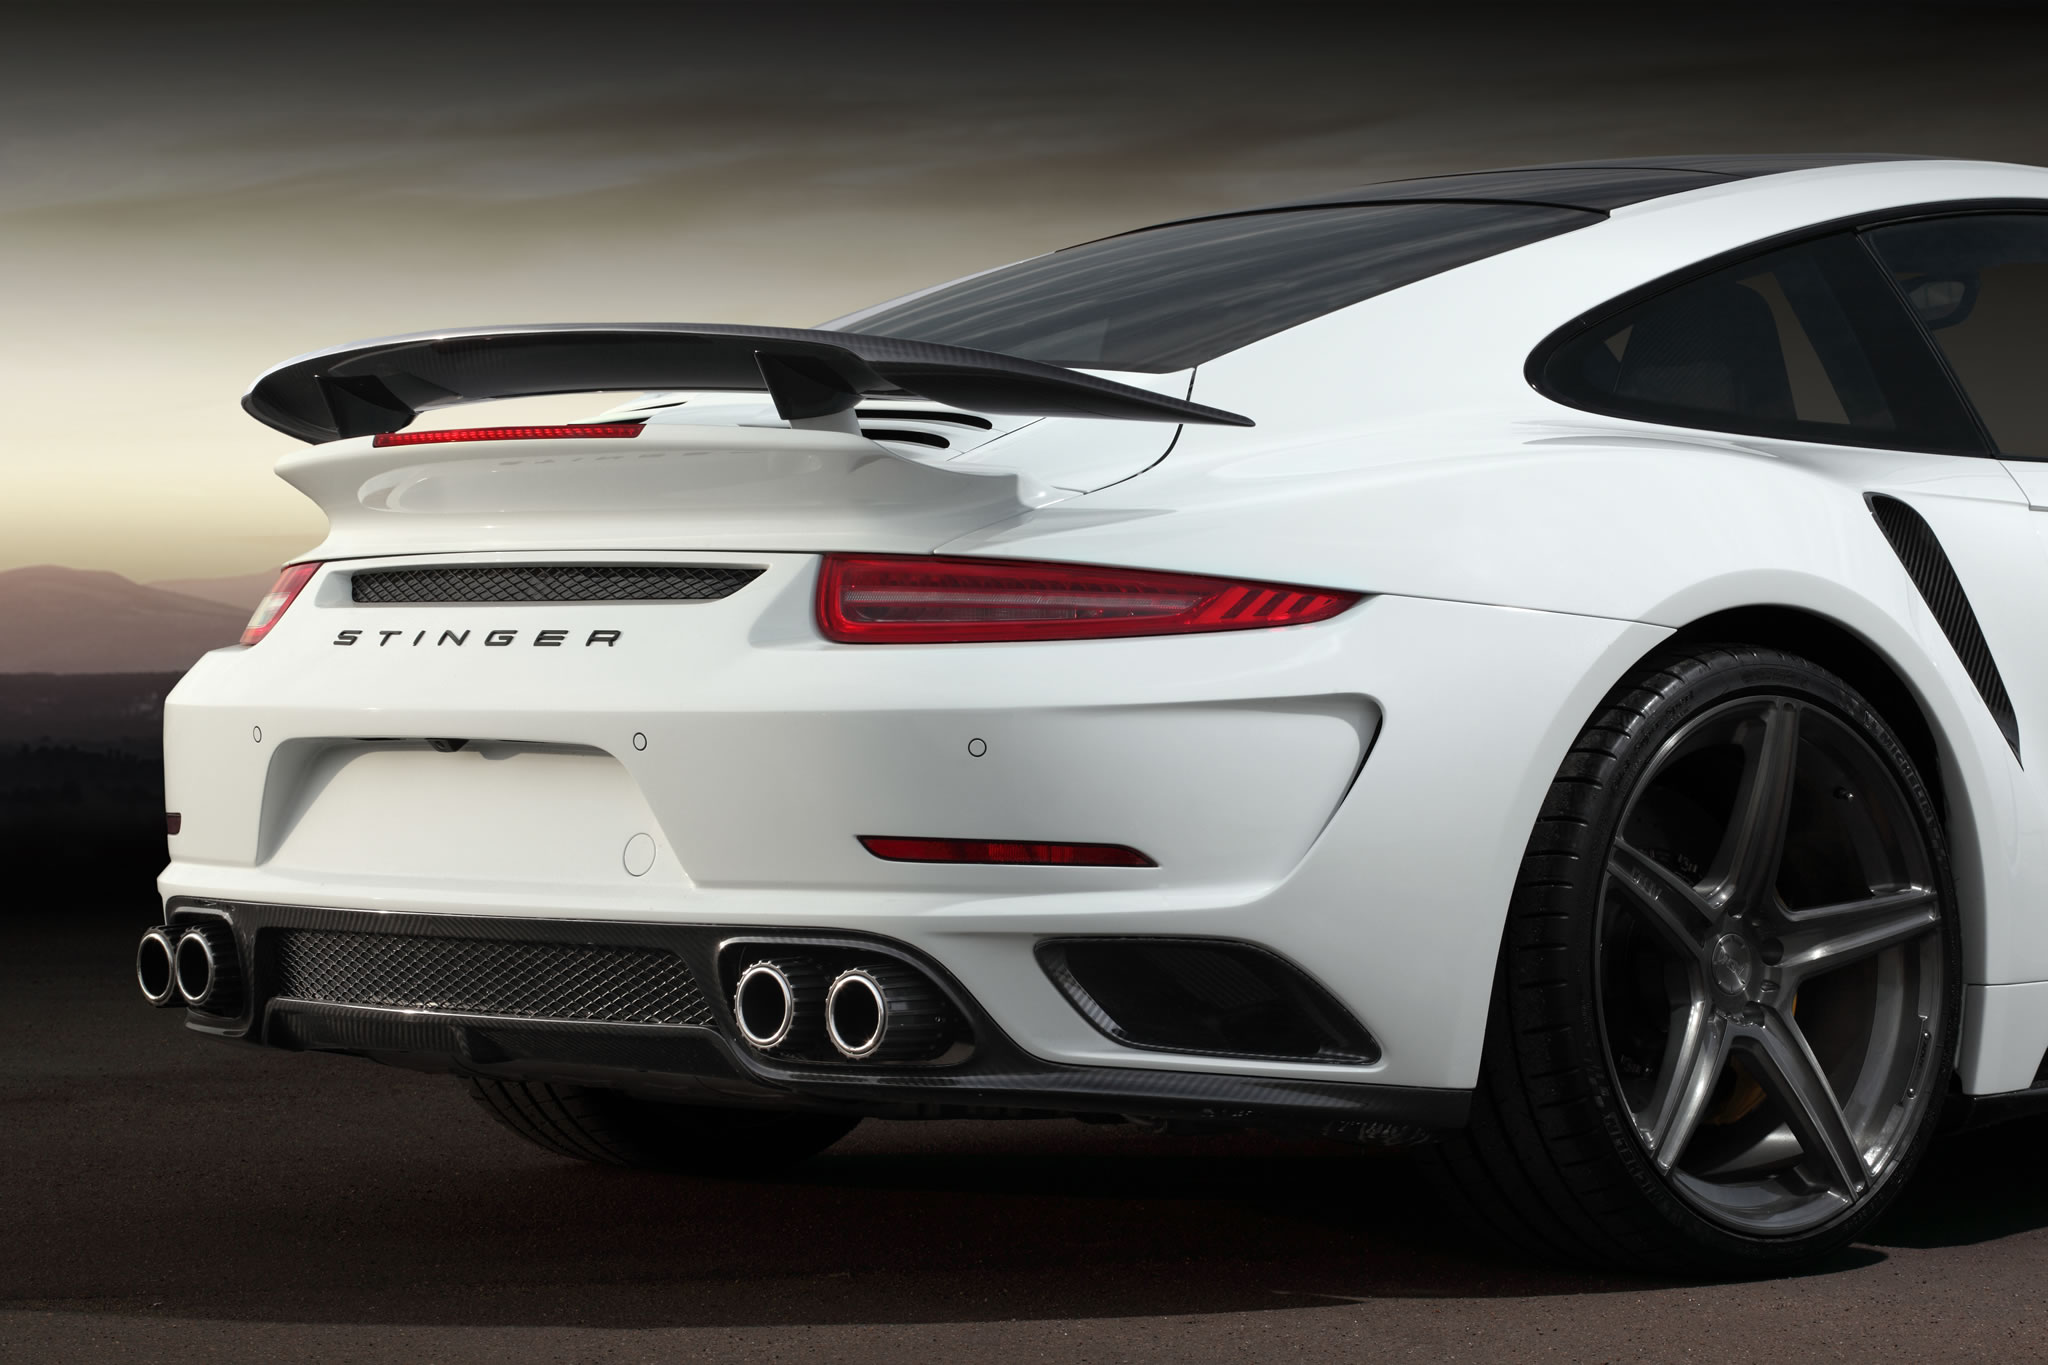 2015 porsche 911 turbo s stinger gtr by topcar detail photo rear wing size 2048 x 1365 nr. Black Bedroom Furniture Sets. Home Design Ideas